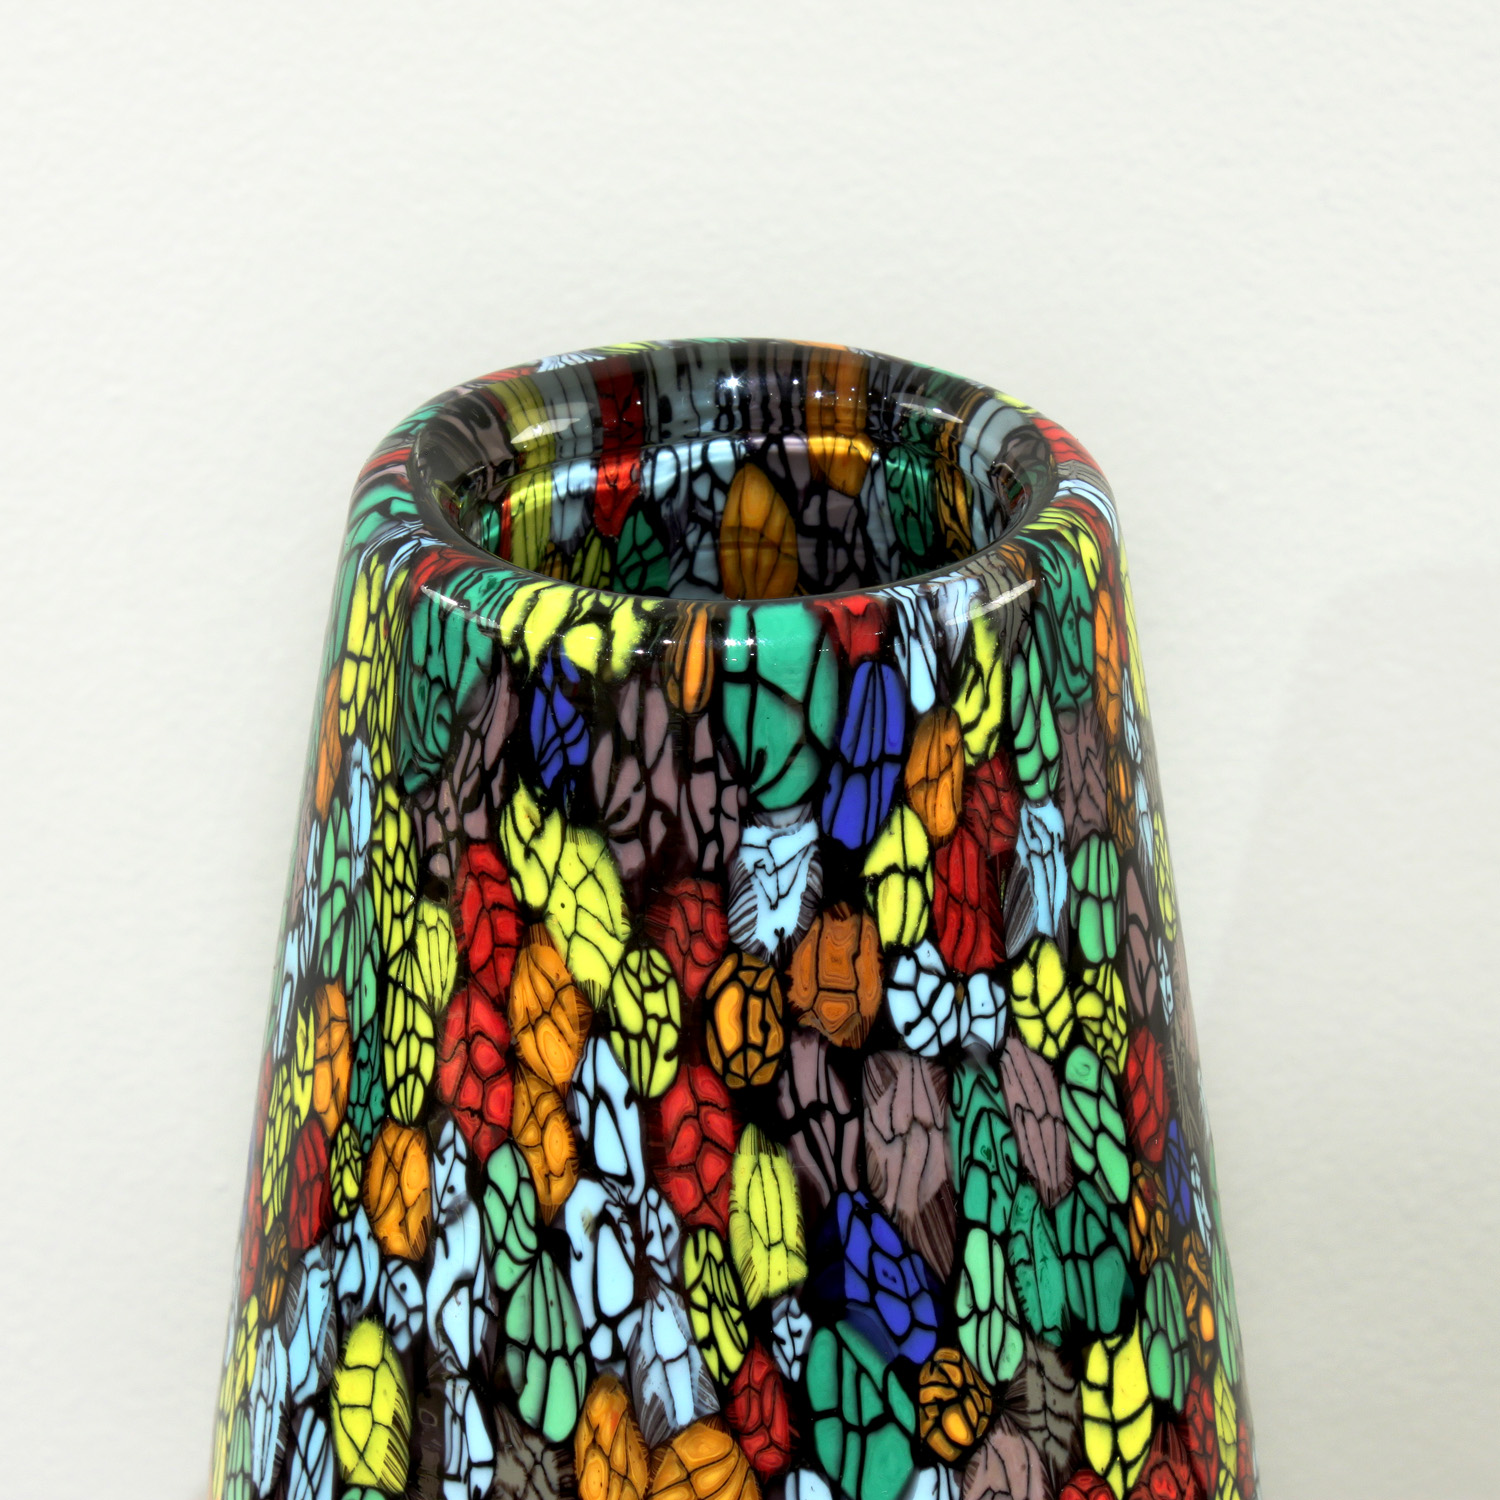 V Ferro 45 conical colorful glass79 hires top.jpg